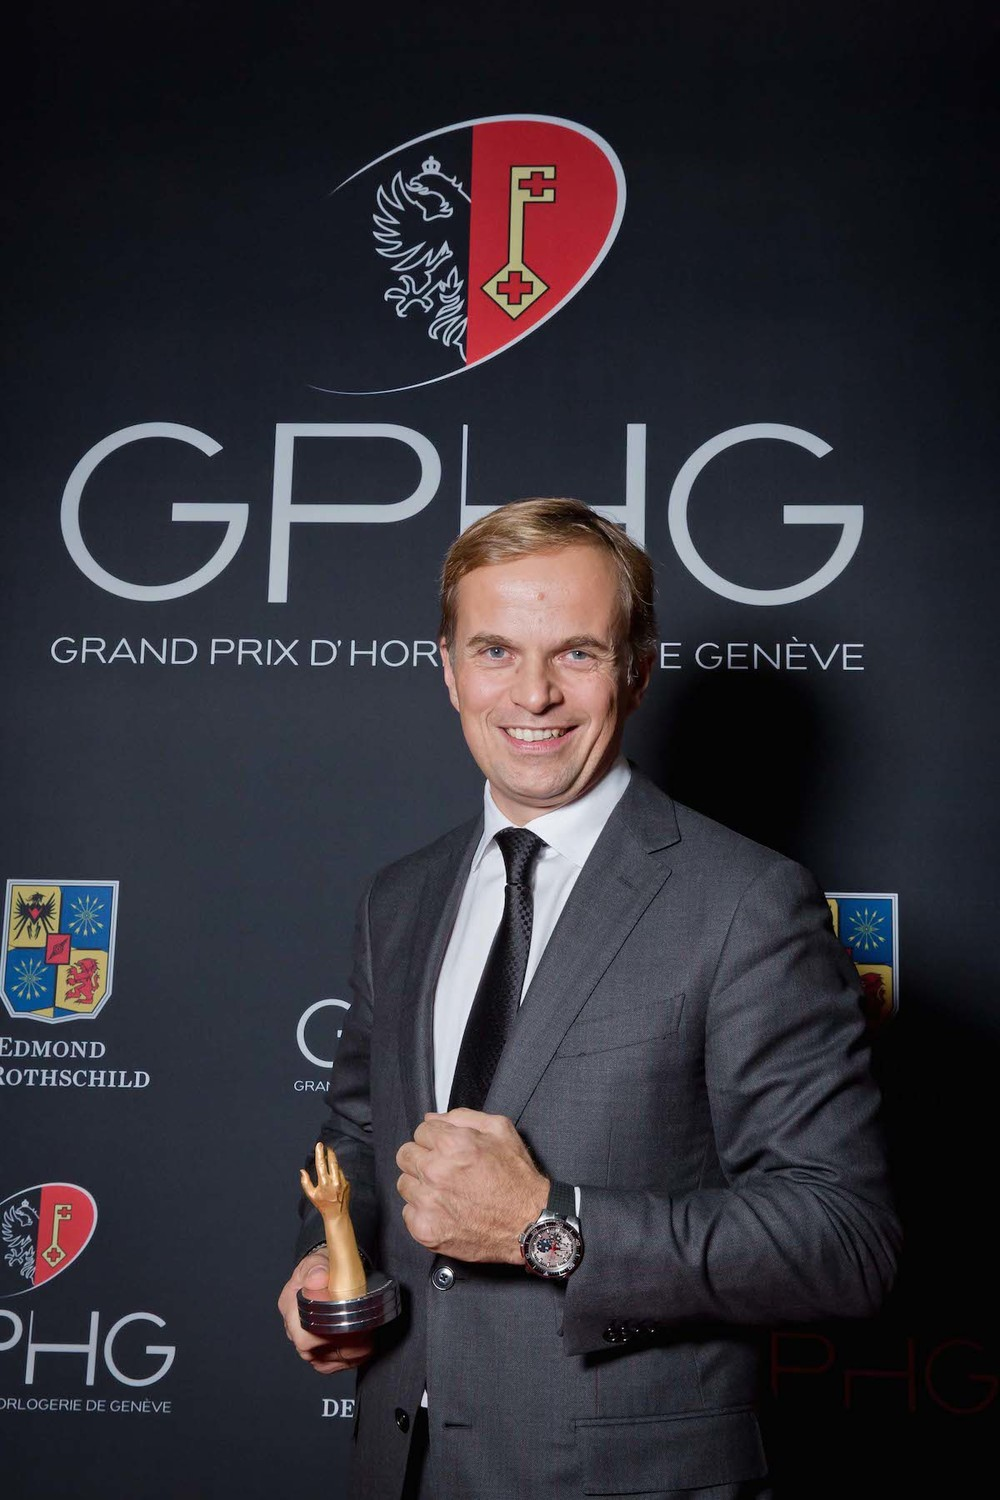 Photo: Jean-Frédéric Dufour at the Grand Prix d'Horlogerie de Genève 2013. ©GPHG.org